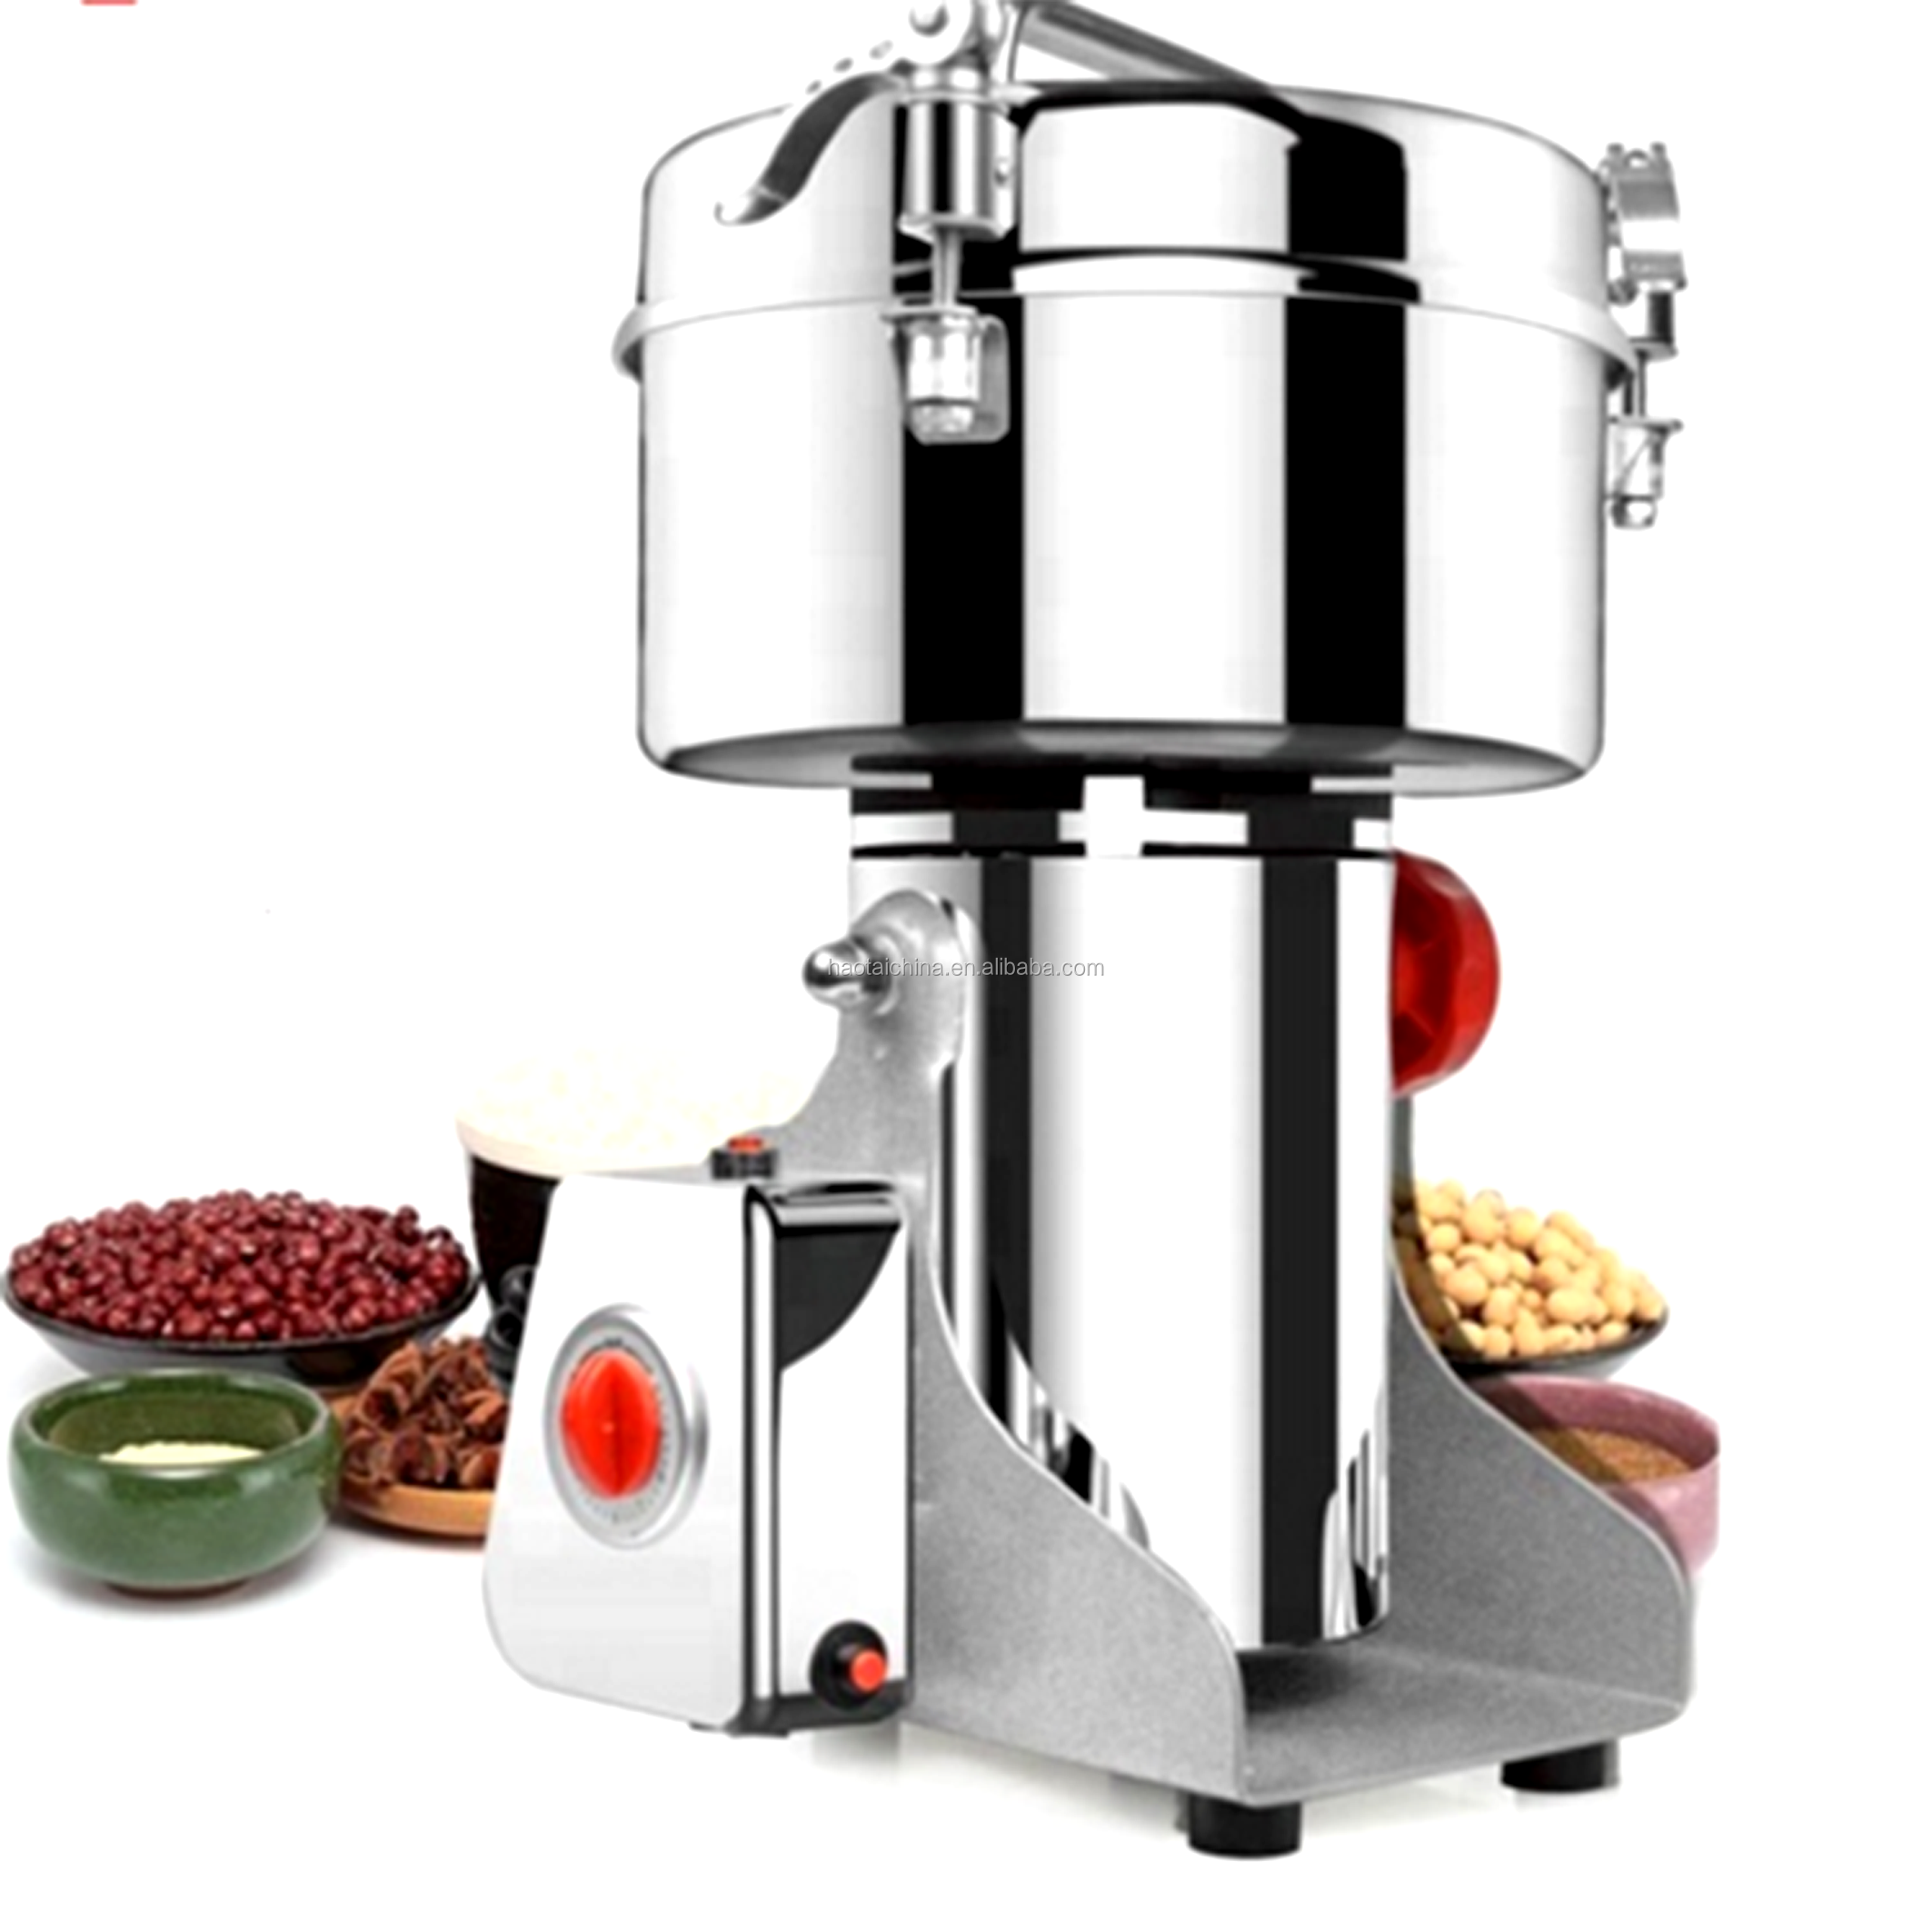 2000g Small Home Use Electric Swing Seeds Grinding Machine Mini Nuts Beans Grinder